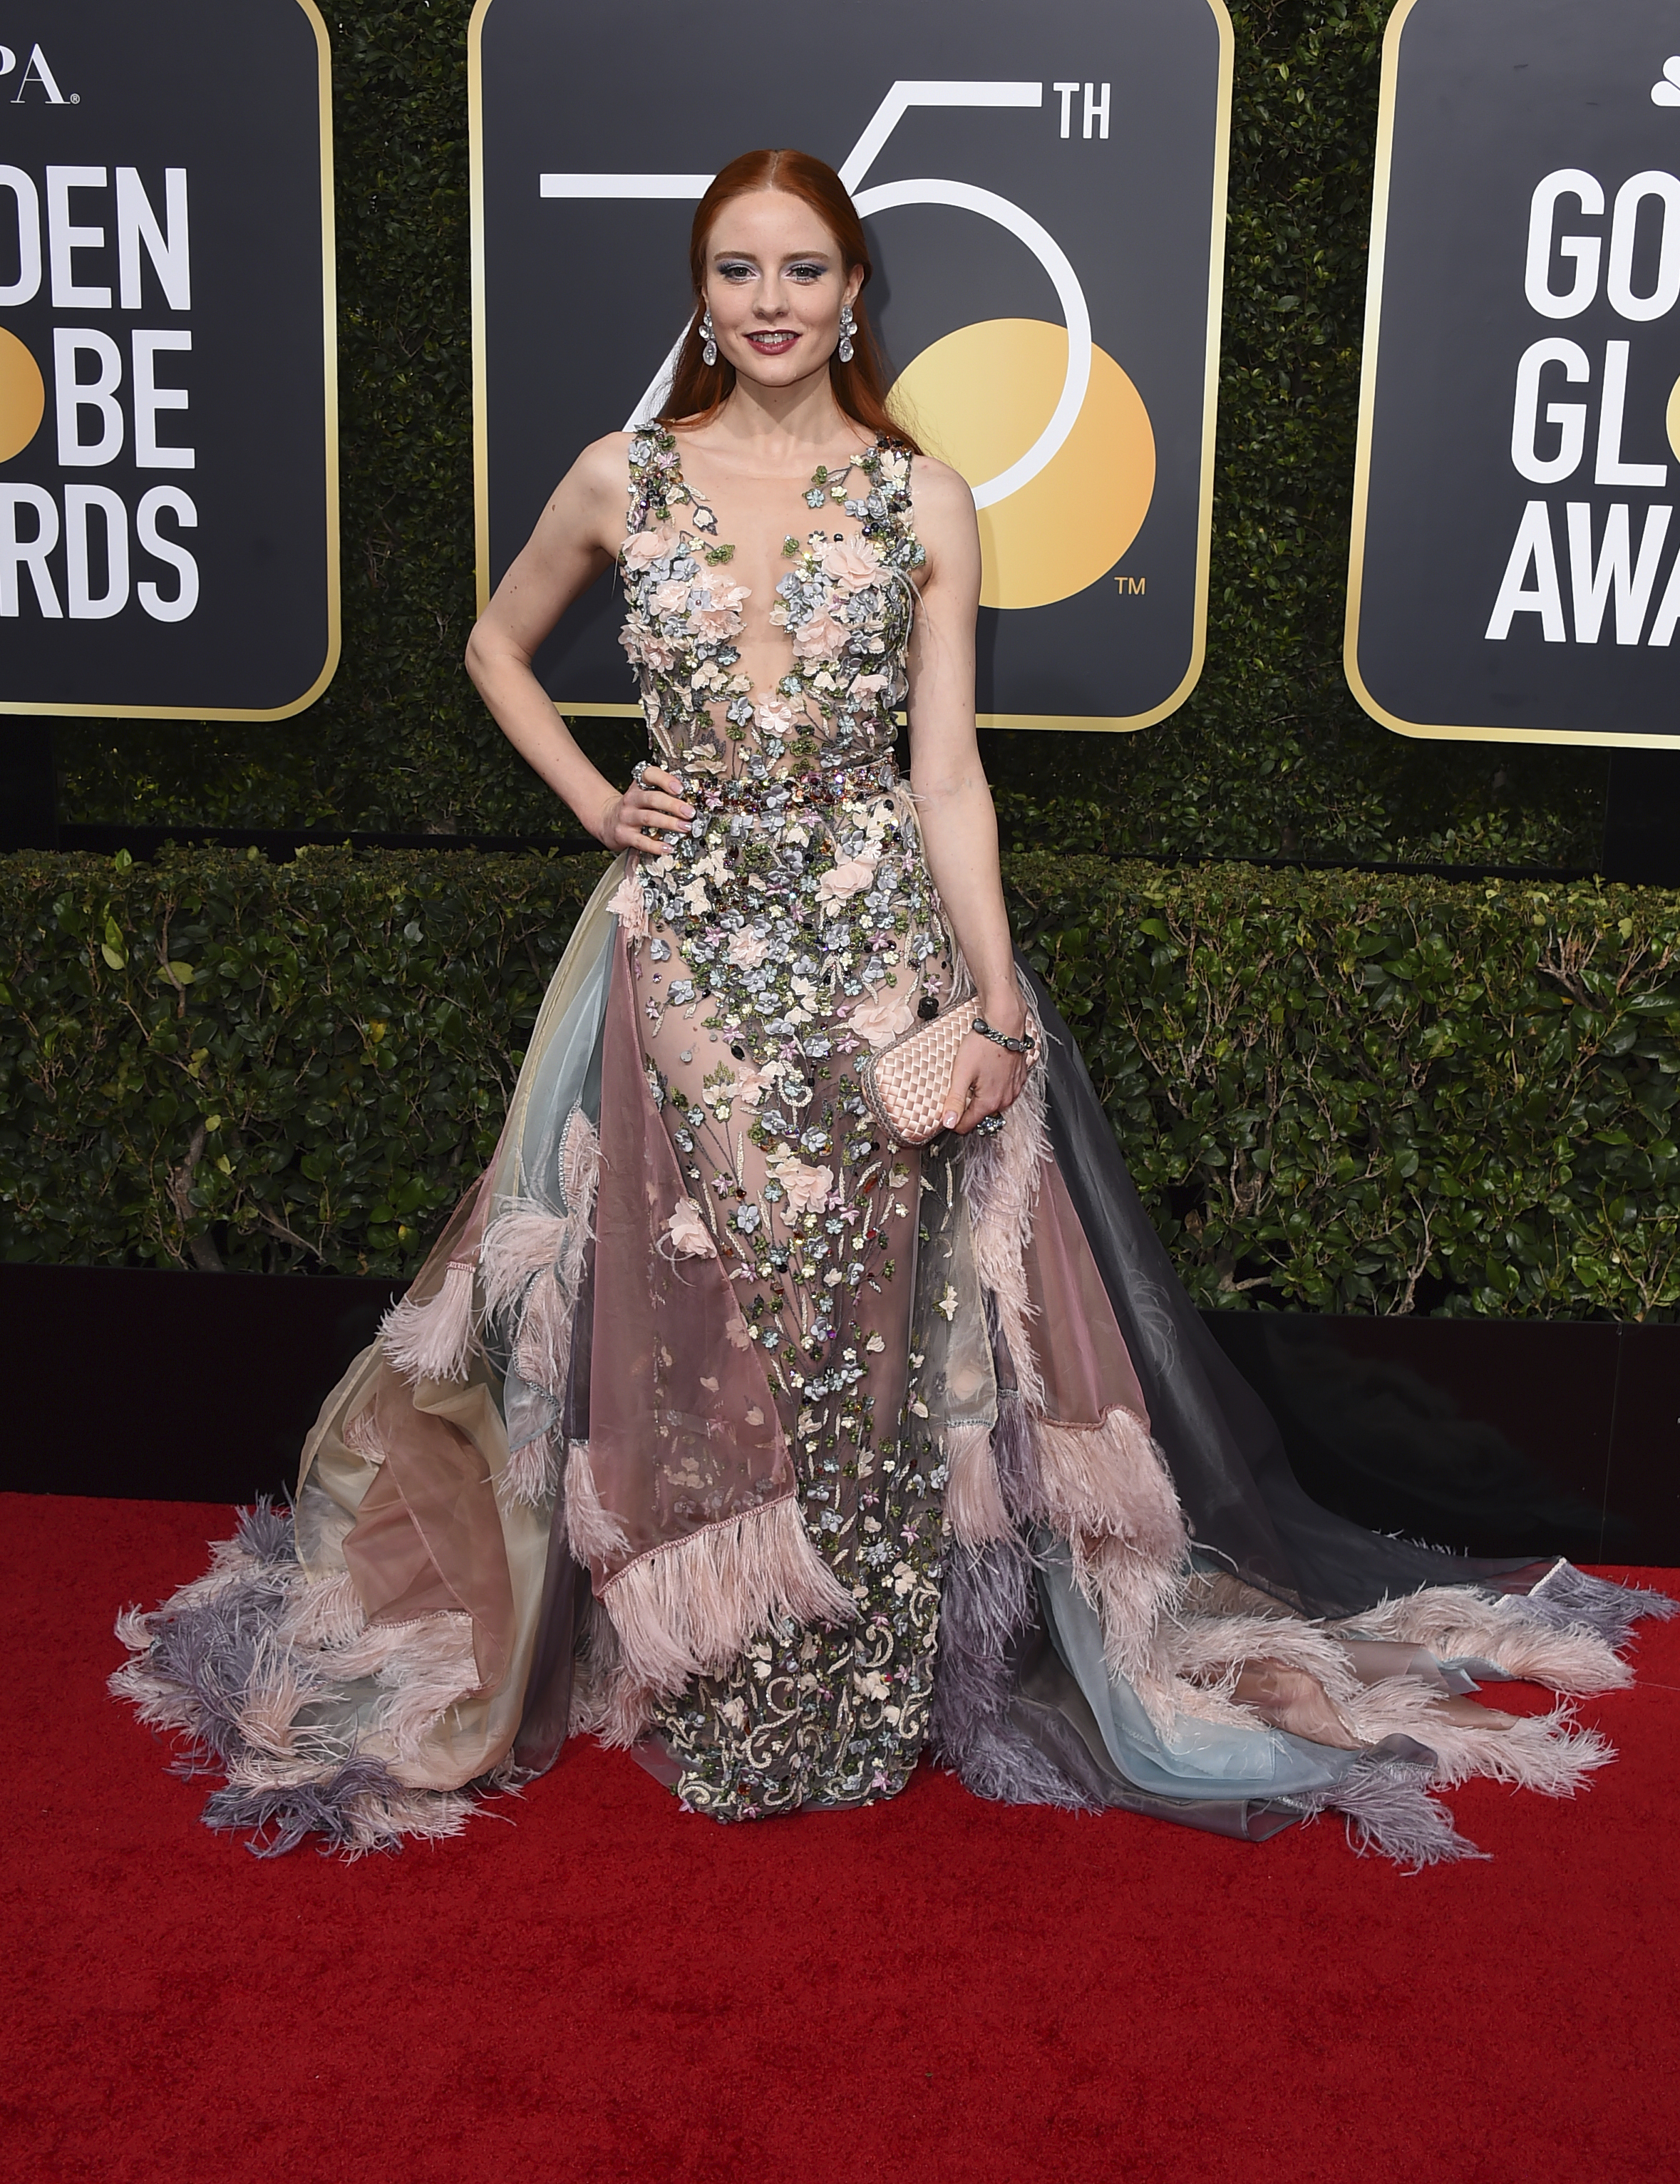 <div class='meta'><div class='origin-logo' data-origin='AP'></div><span class='caption-text' data-credit='Jordan Strauss/Invision/AP'>Barbara Meier arrives at the 75th annual Golden Globe Awards at the Beverly Hilton Hotel on Sunday, Jan. 7, 2018, in Beverly Hills, Calif.</span></div>